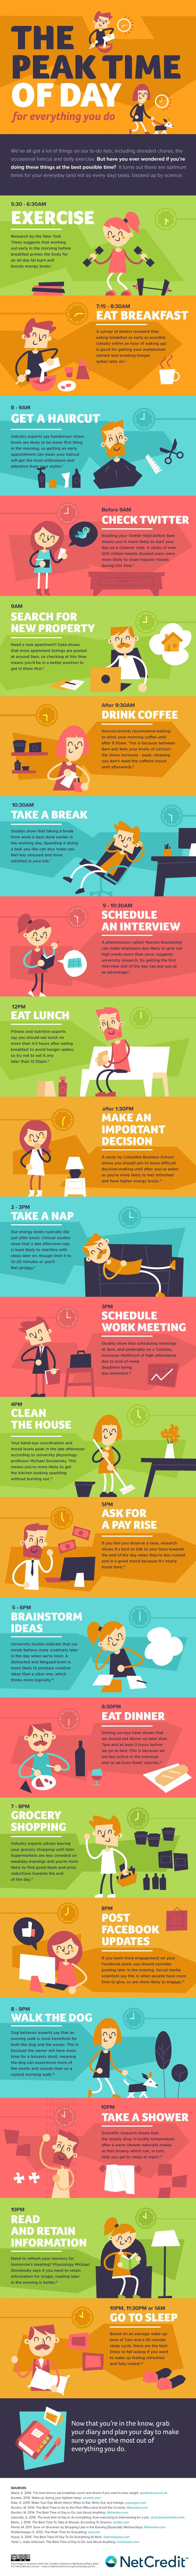 Excellent tips for what time of the day you should complete tasks to be more productive.